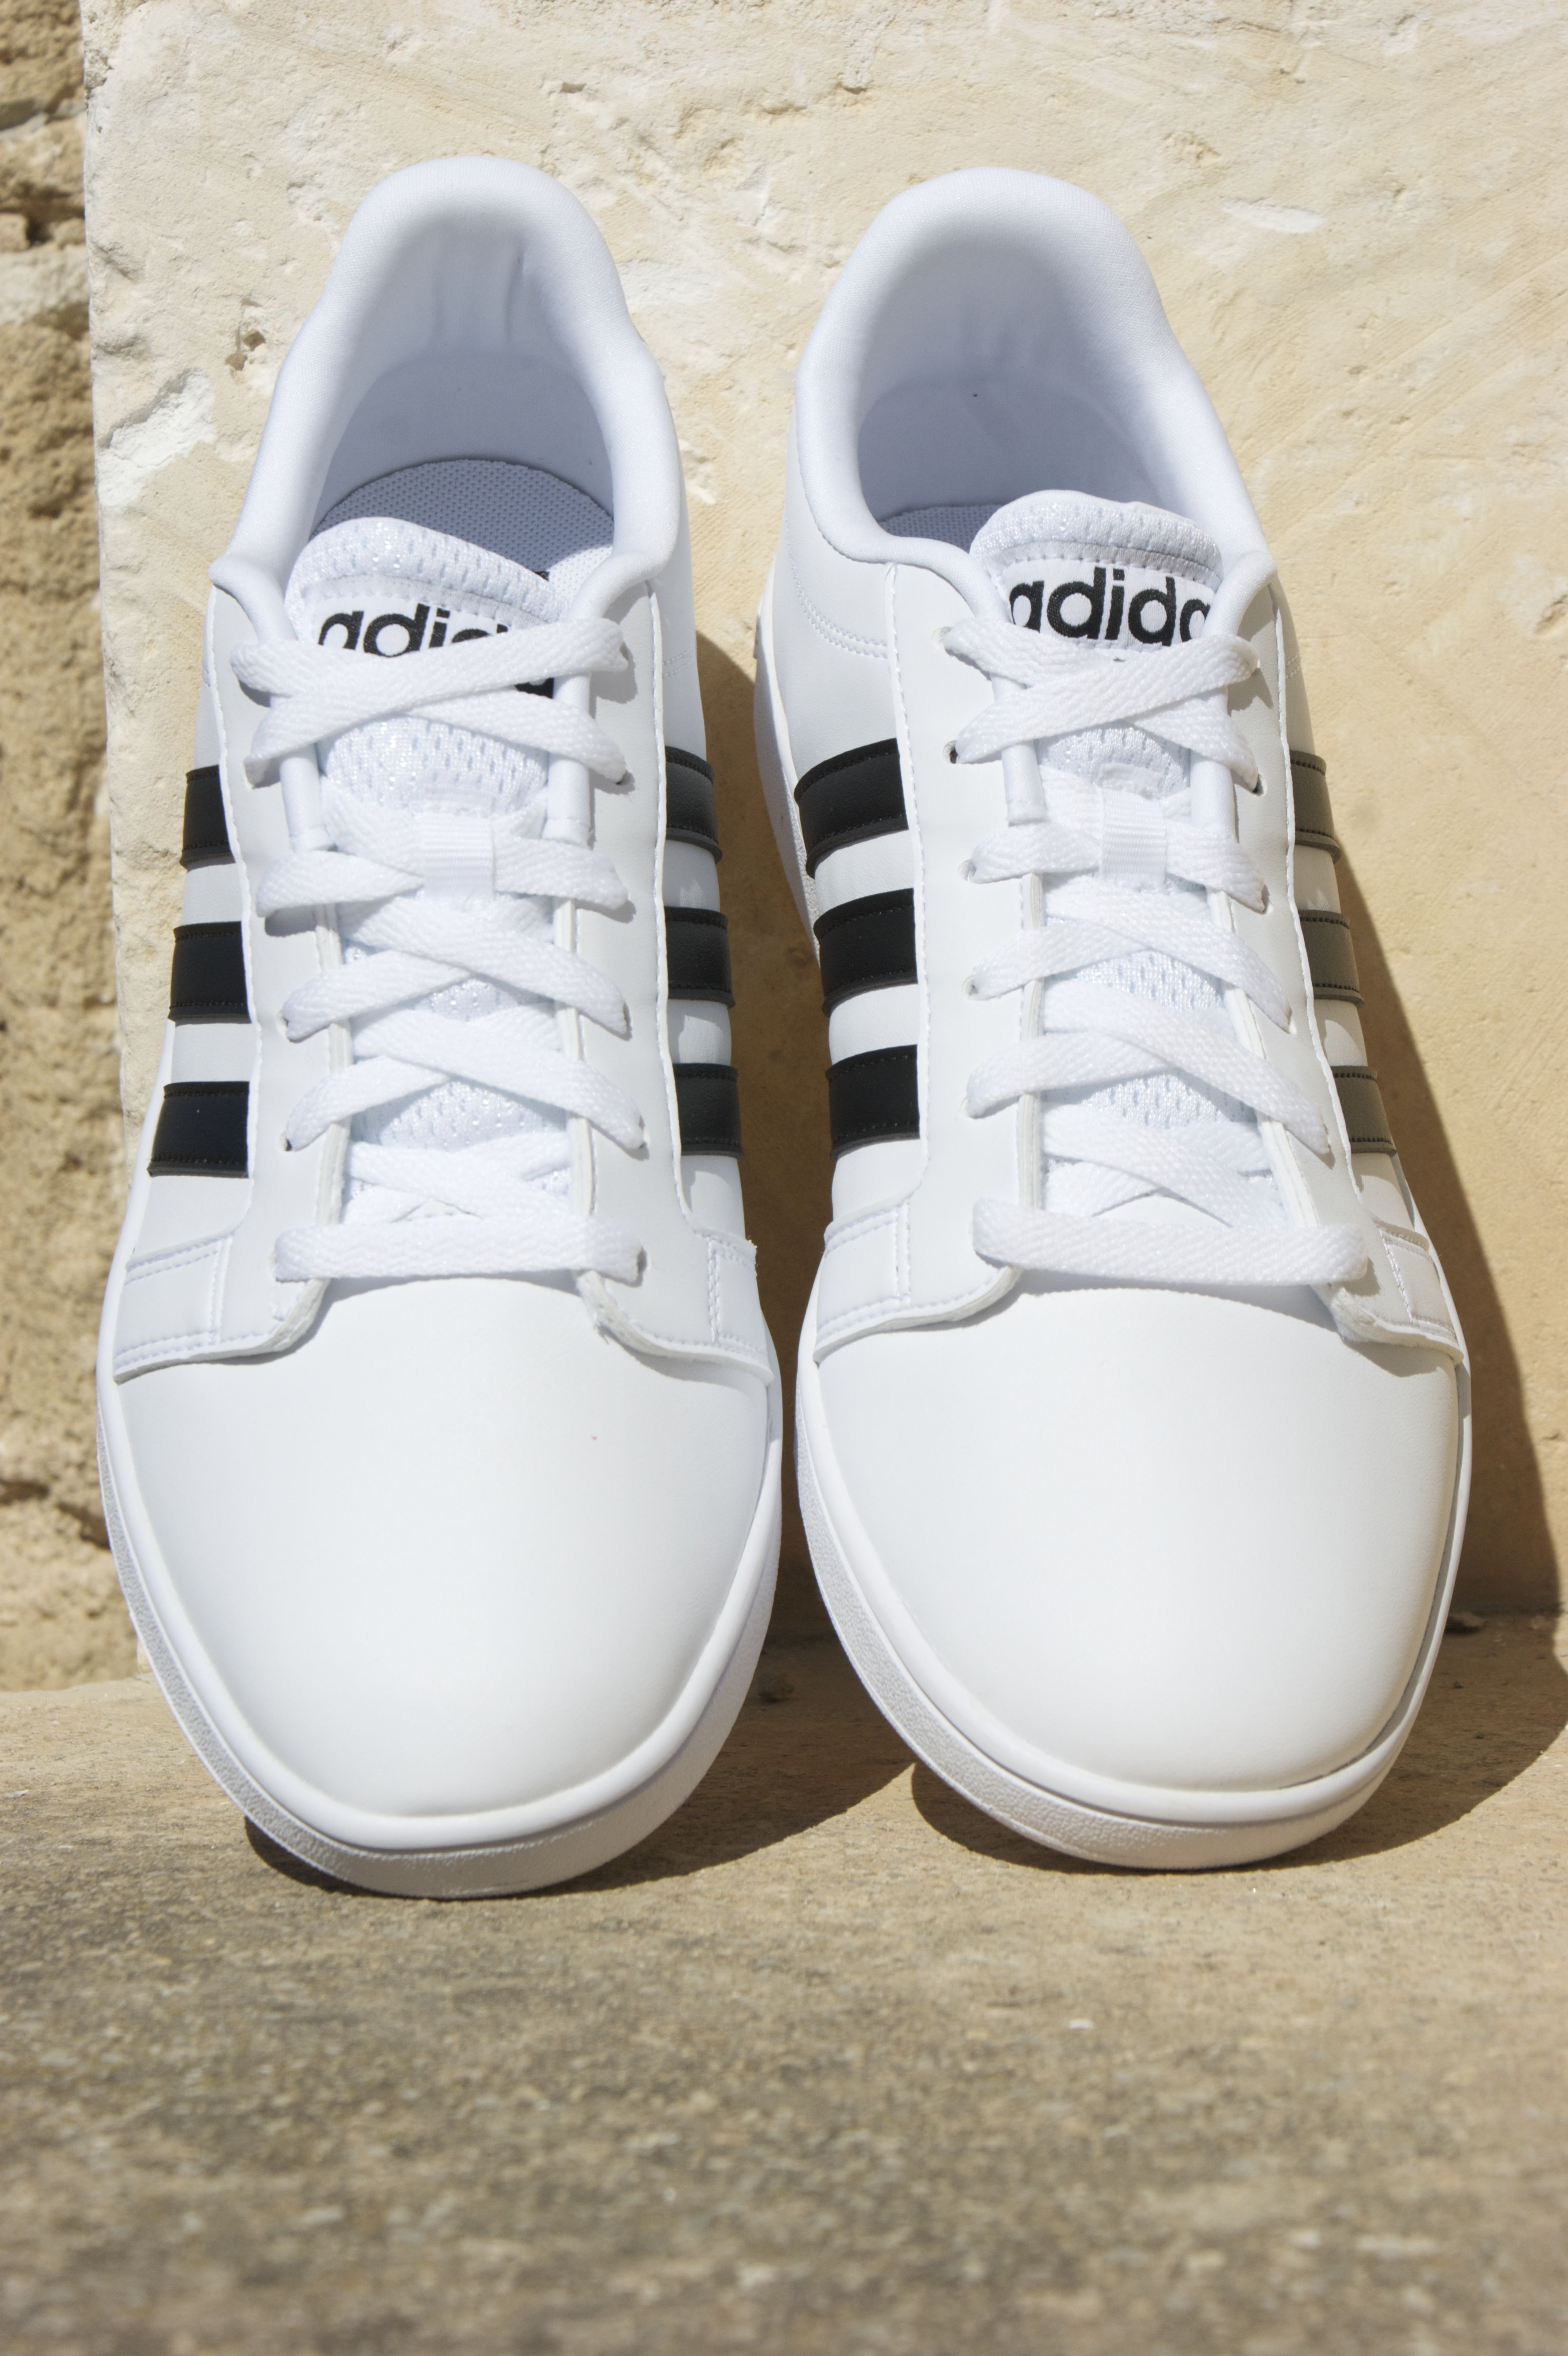 promo code for adidas neo shoes deichmann 895f9 cfc29